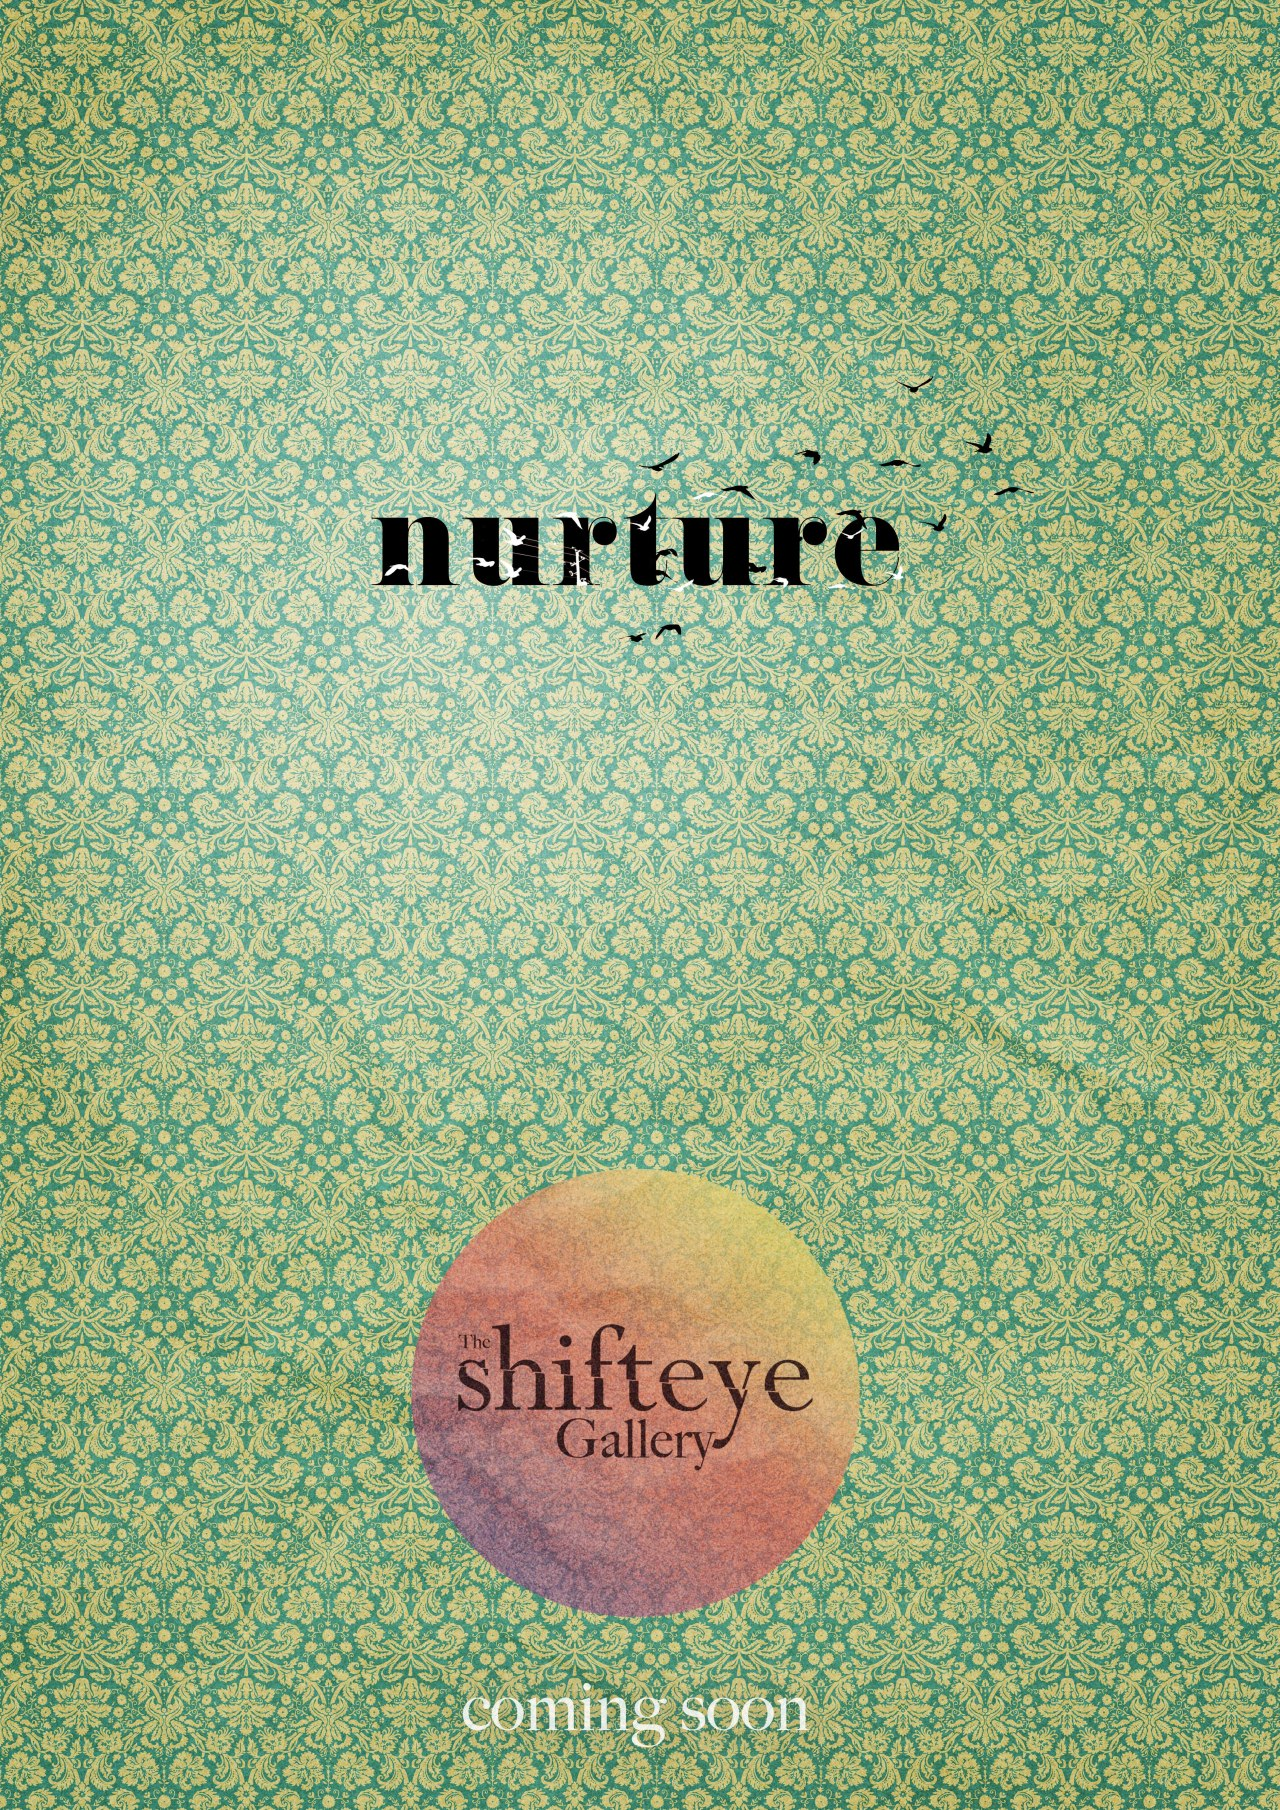 @shifteyegallery Coming Soon! www.facebook.com/shifteyegallery